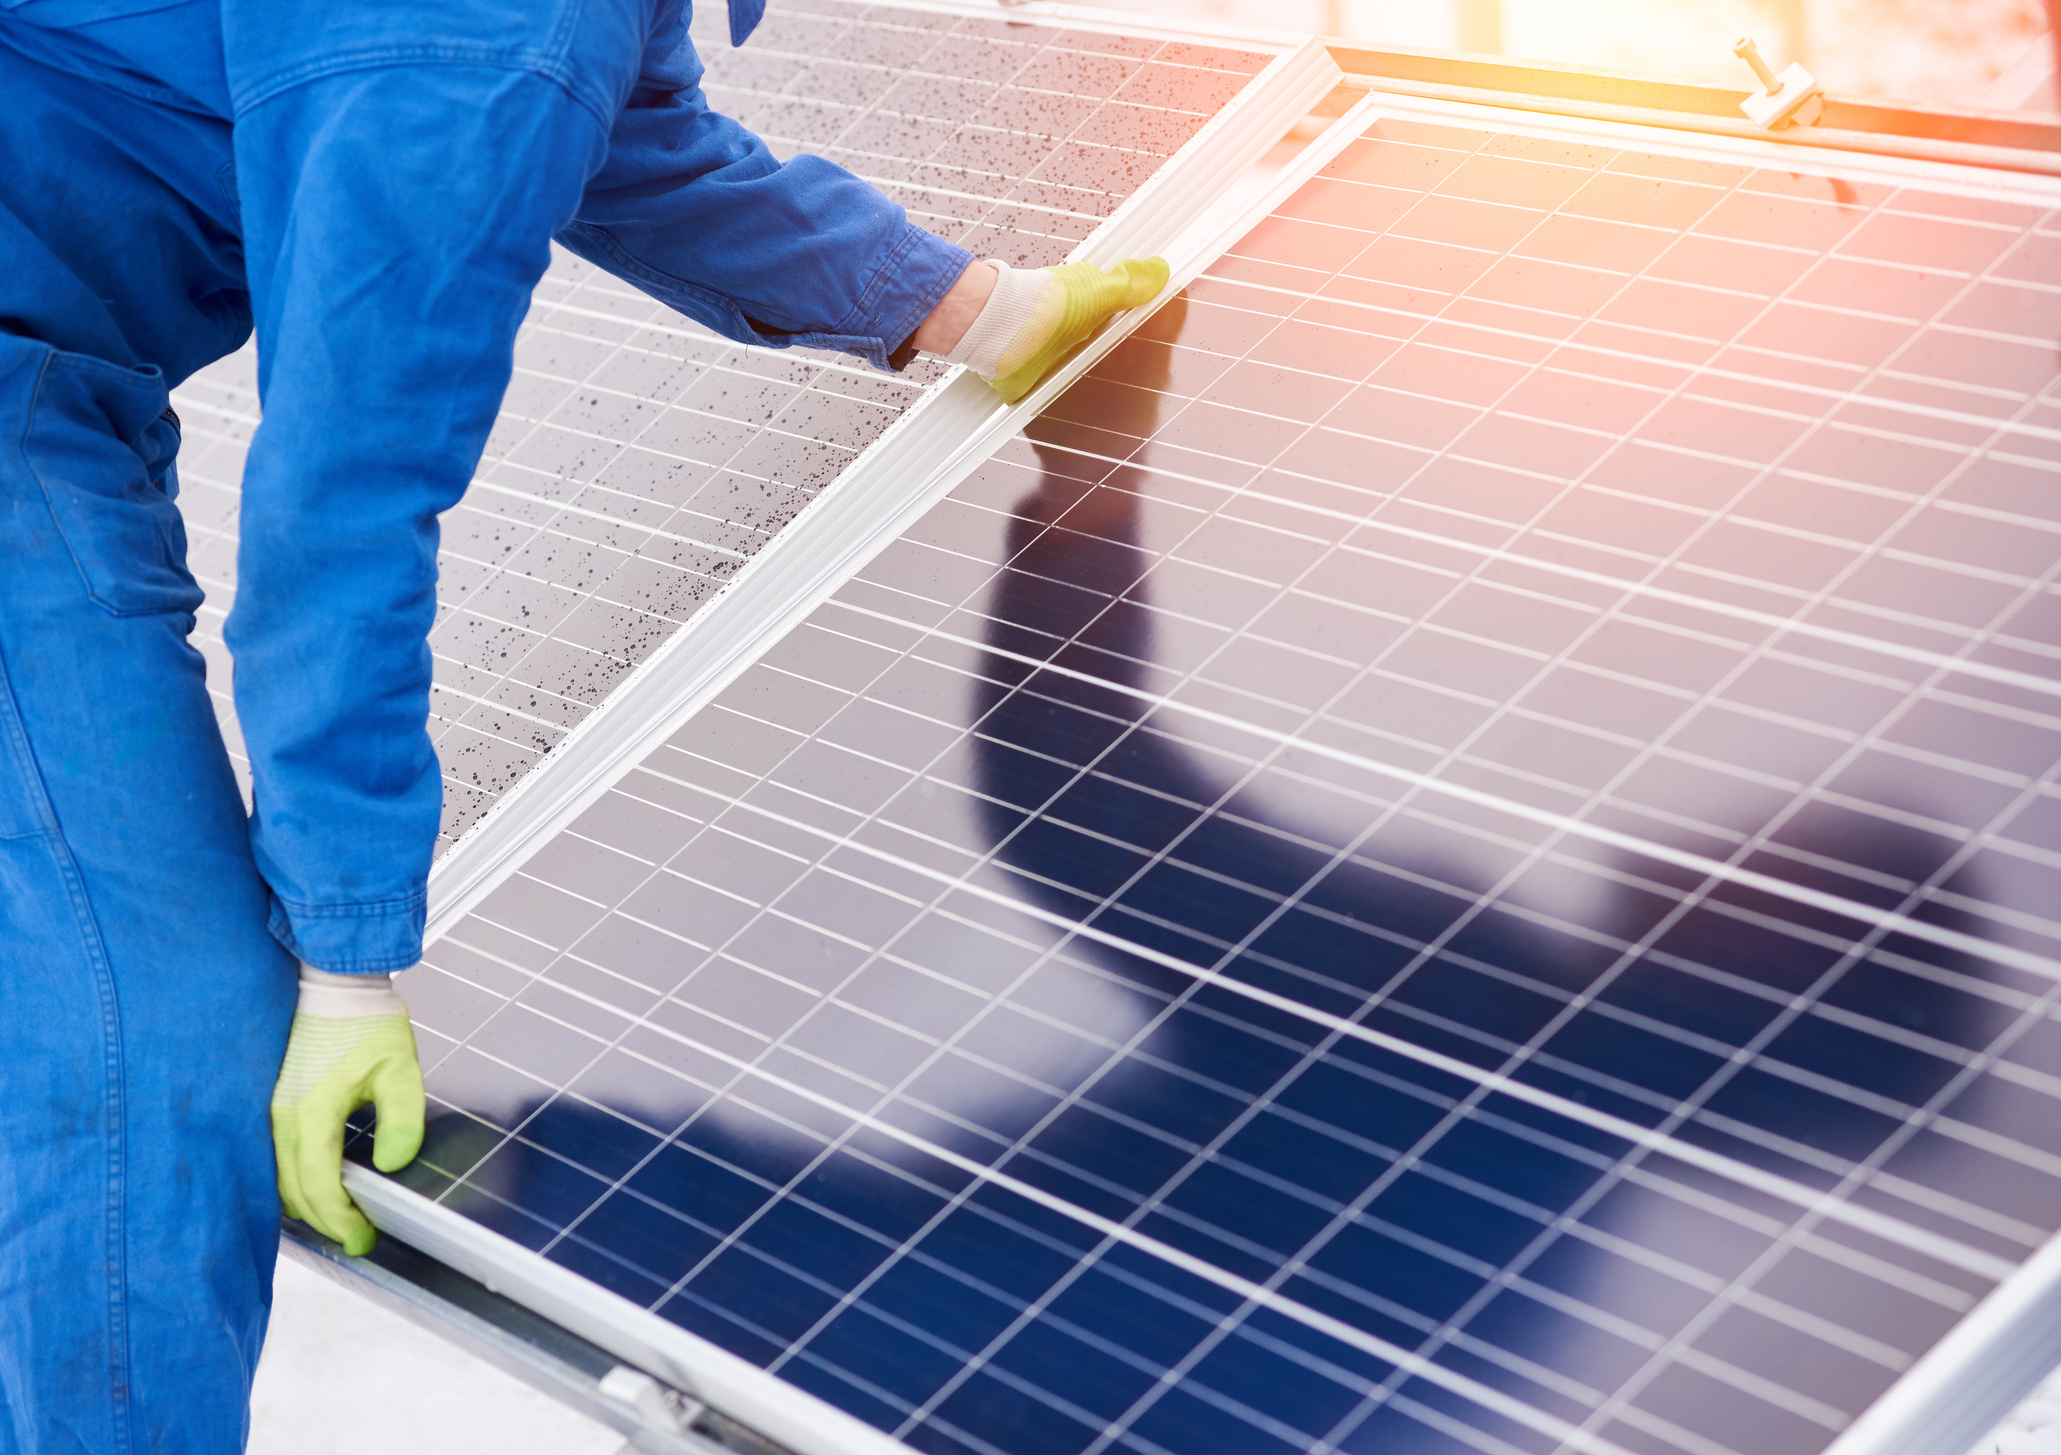 Are you a Solar Contractor? Become a Partner! - Generations partners with many local contractors to offer superior solar financing for your customers. We provide easy applications, fast approvals, and quick payments so you can get the install started right away.